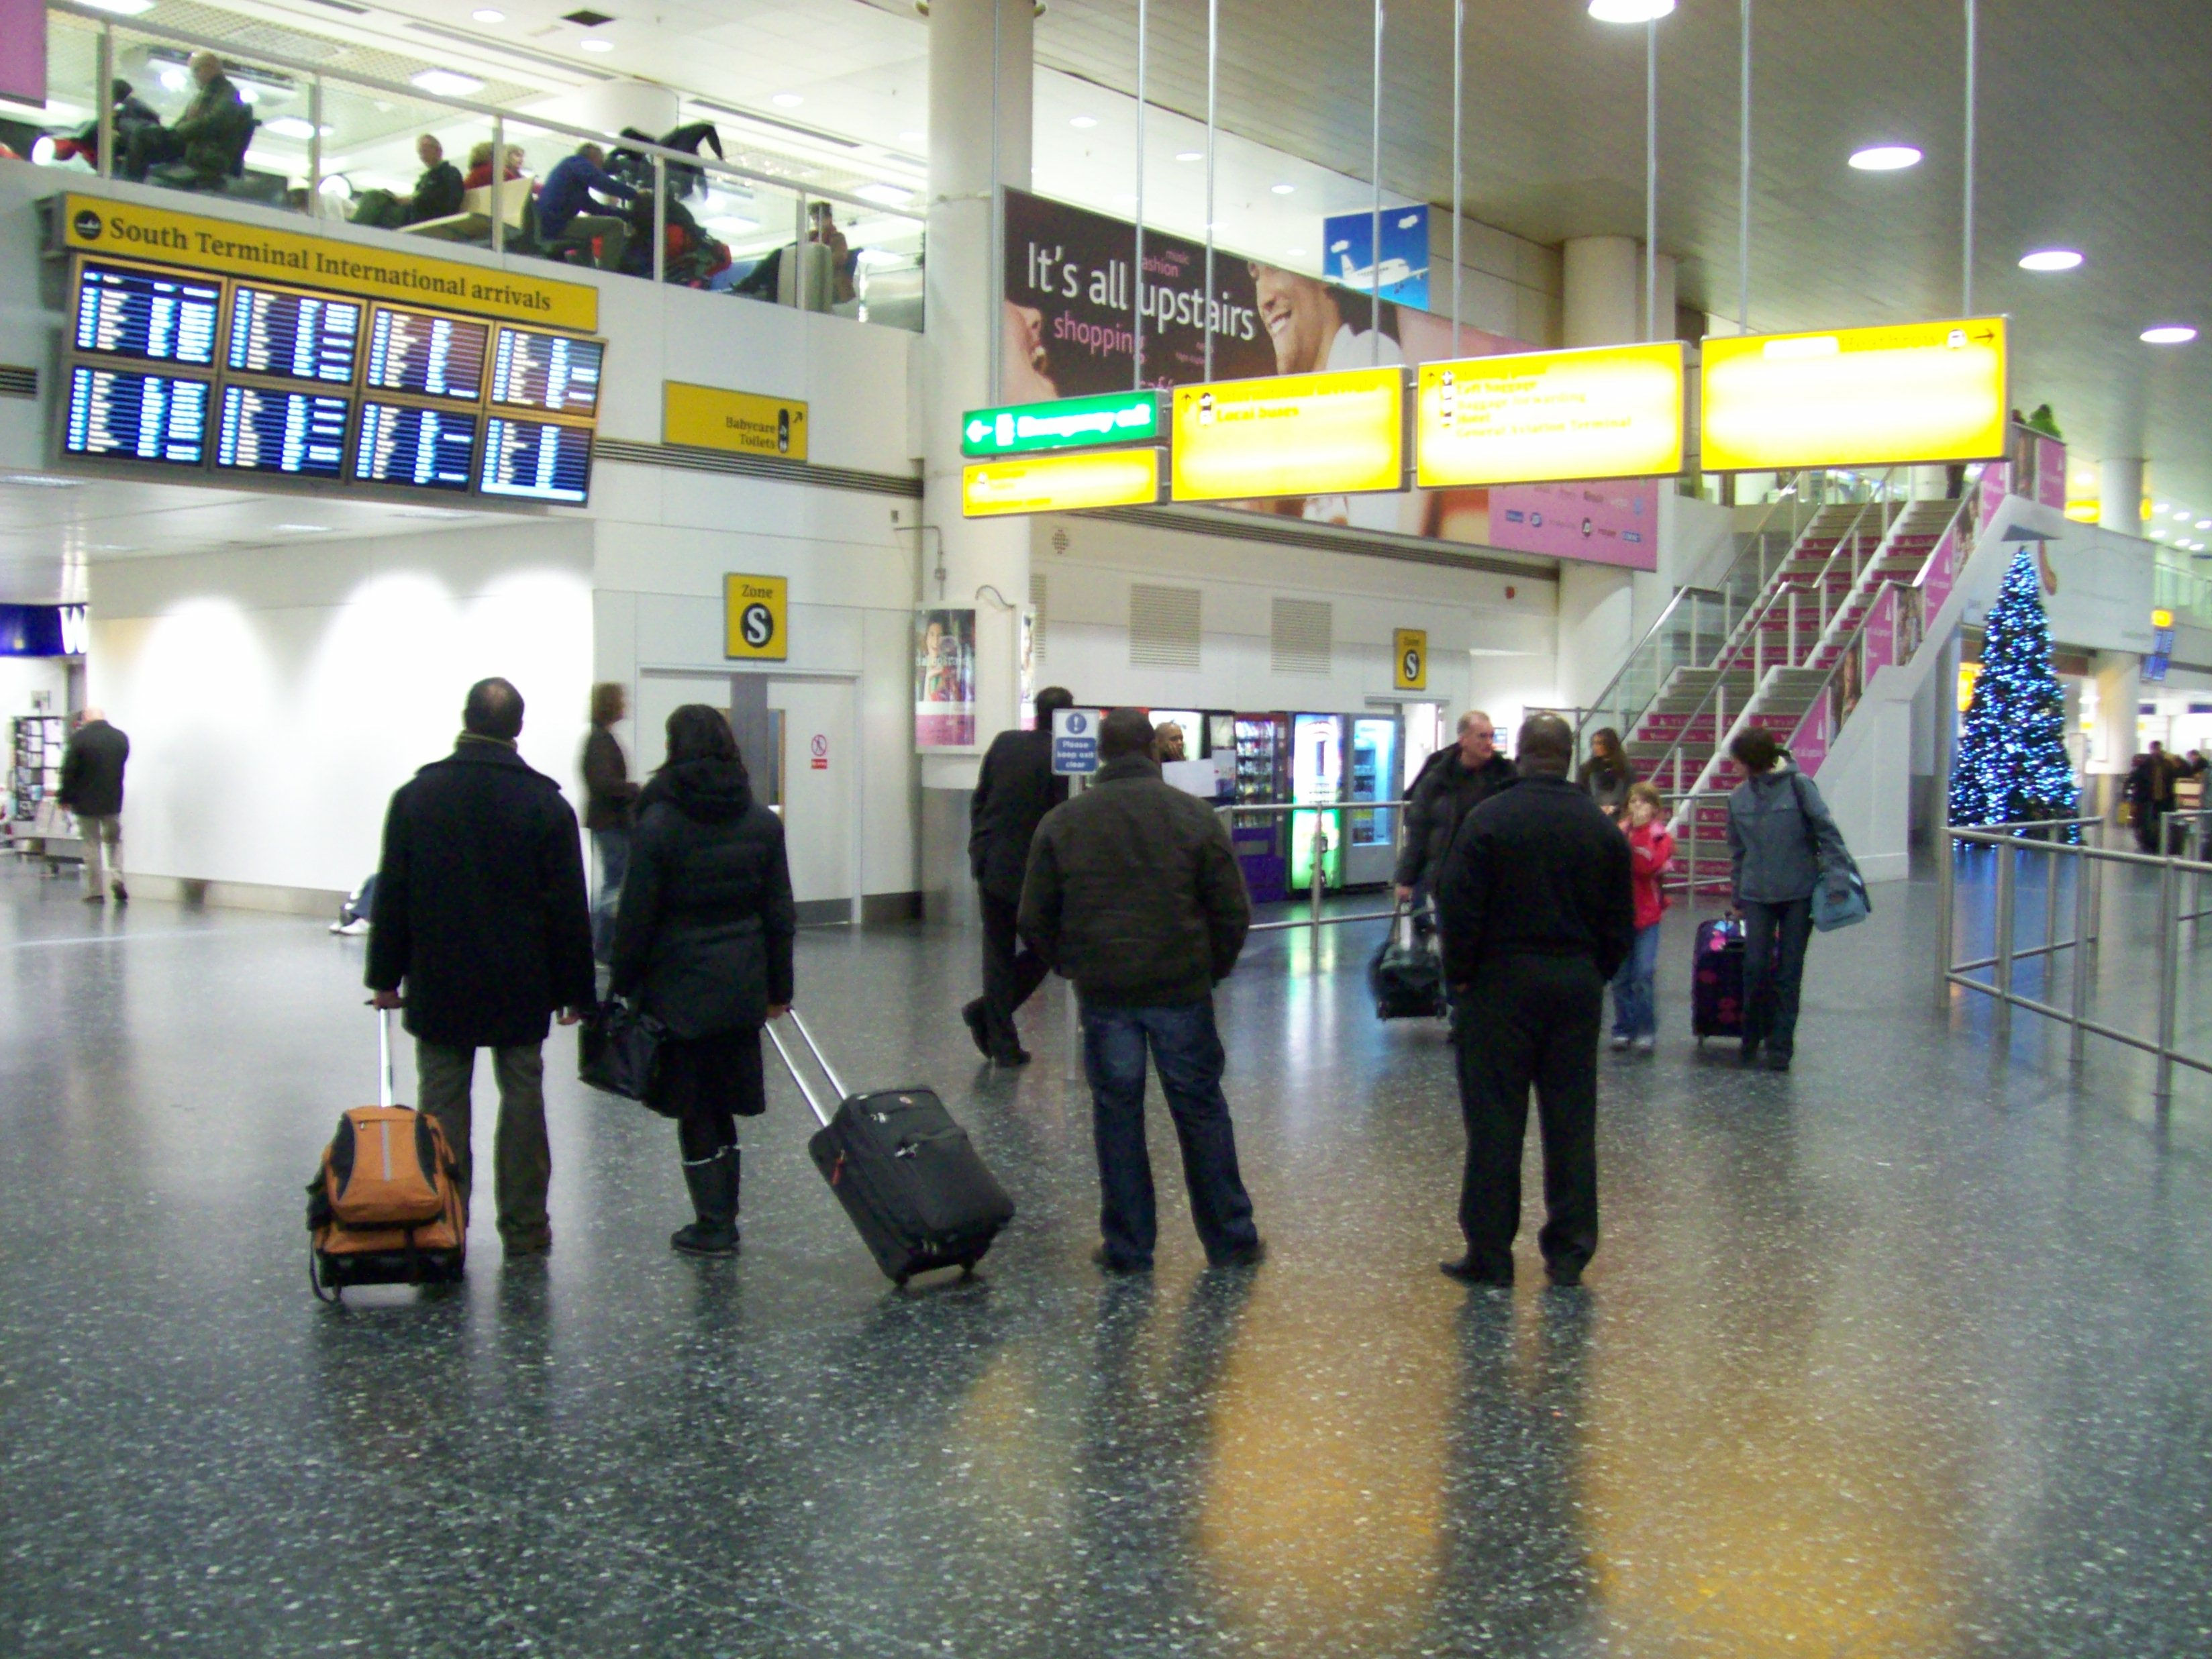 File Gatwick South Terminal International Arrivals